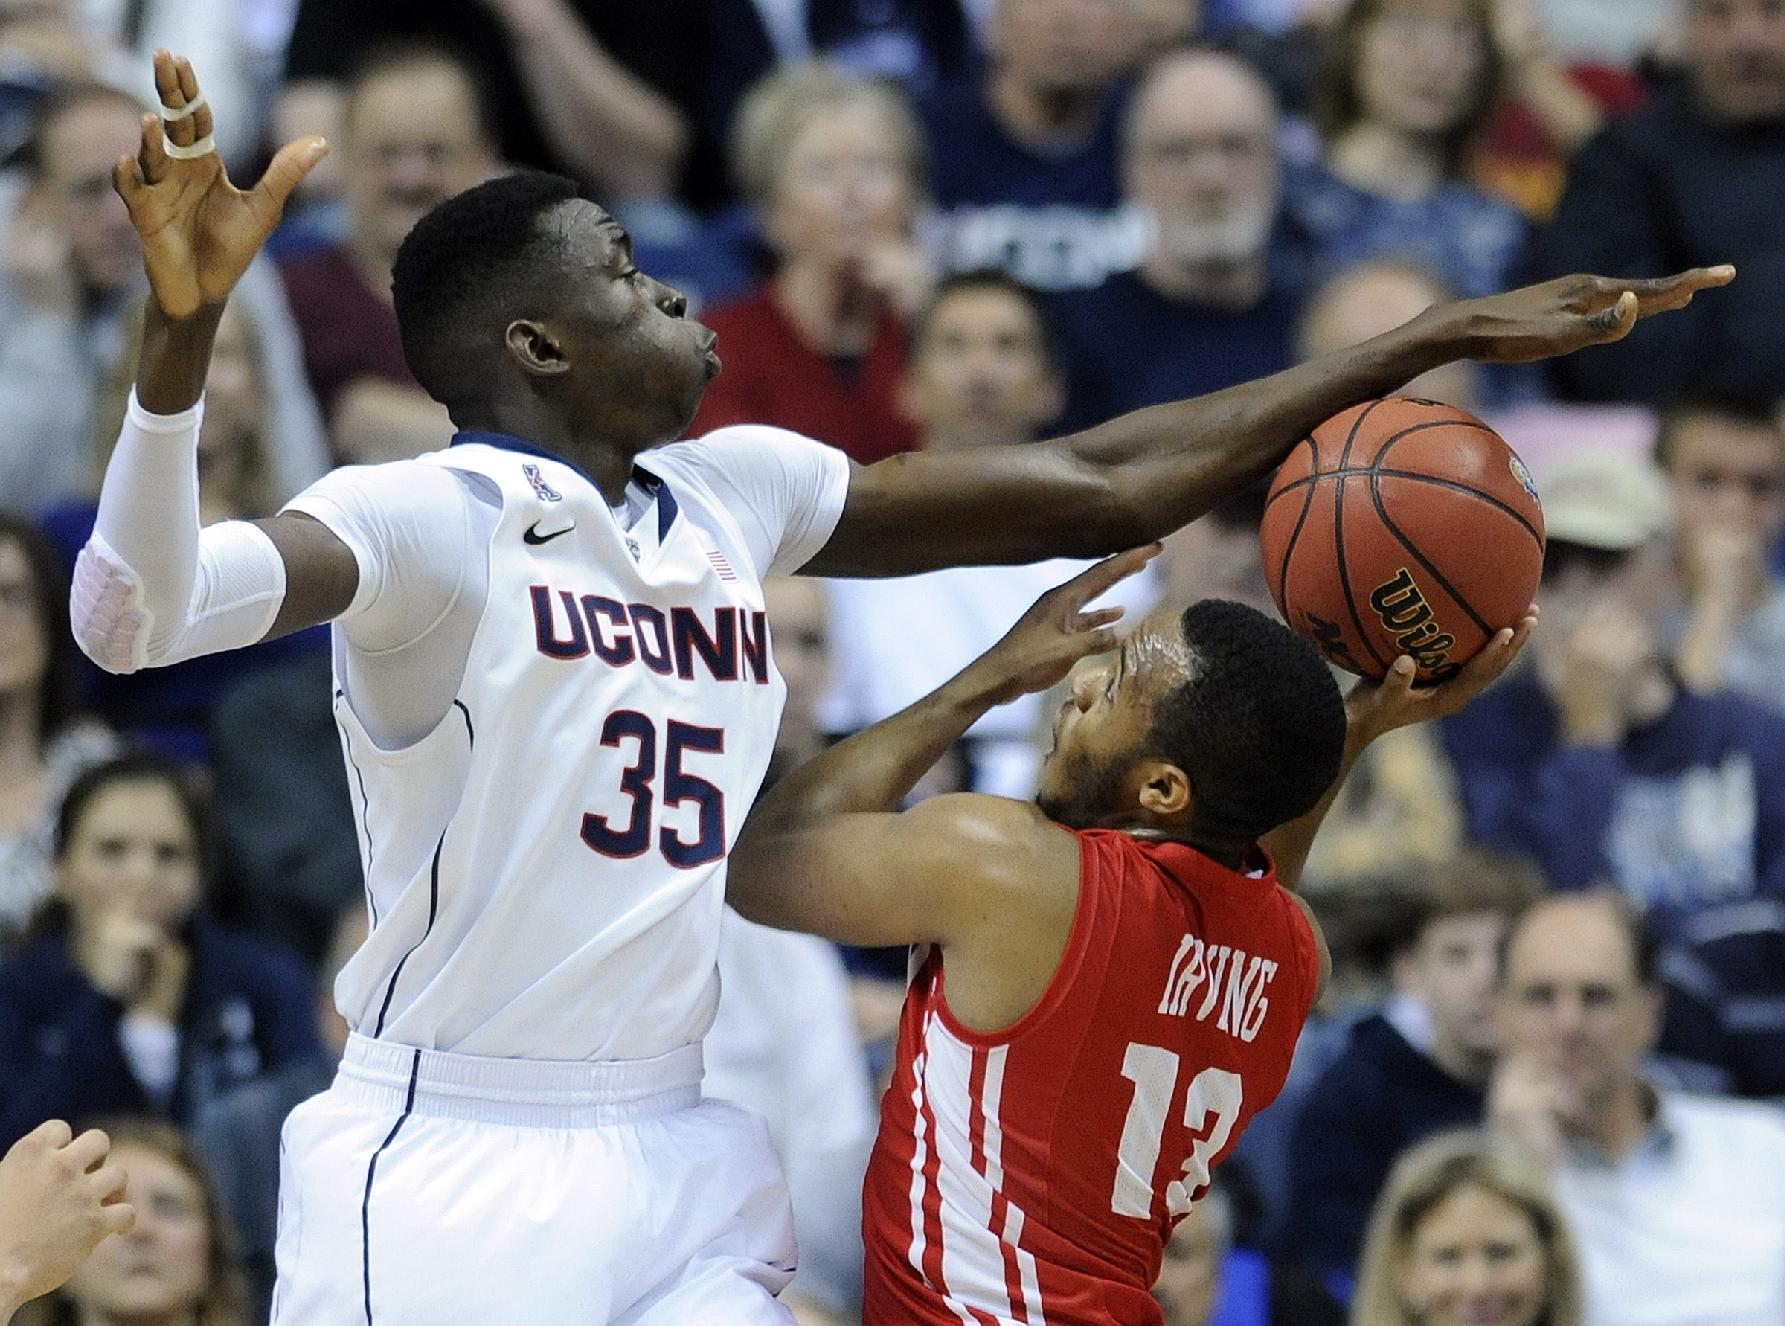 Connecticut's Amida Brimah (35) attempts to block the shot of Boston University's D.J. Irving (13) during the first half of an NCAA college basketball game in Storrs, Conn., on Sunday, Nov. 17, 2013